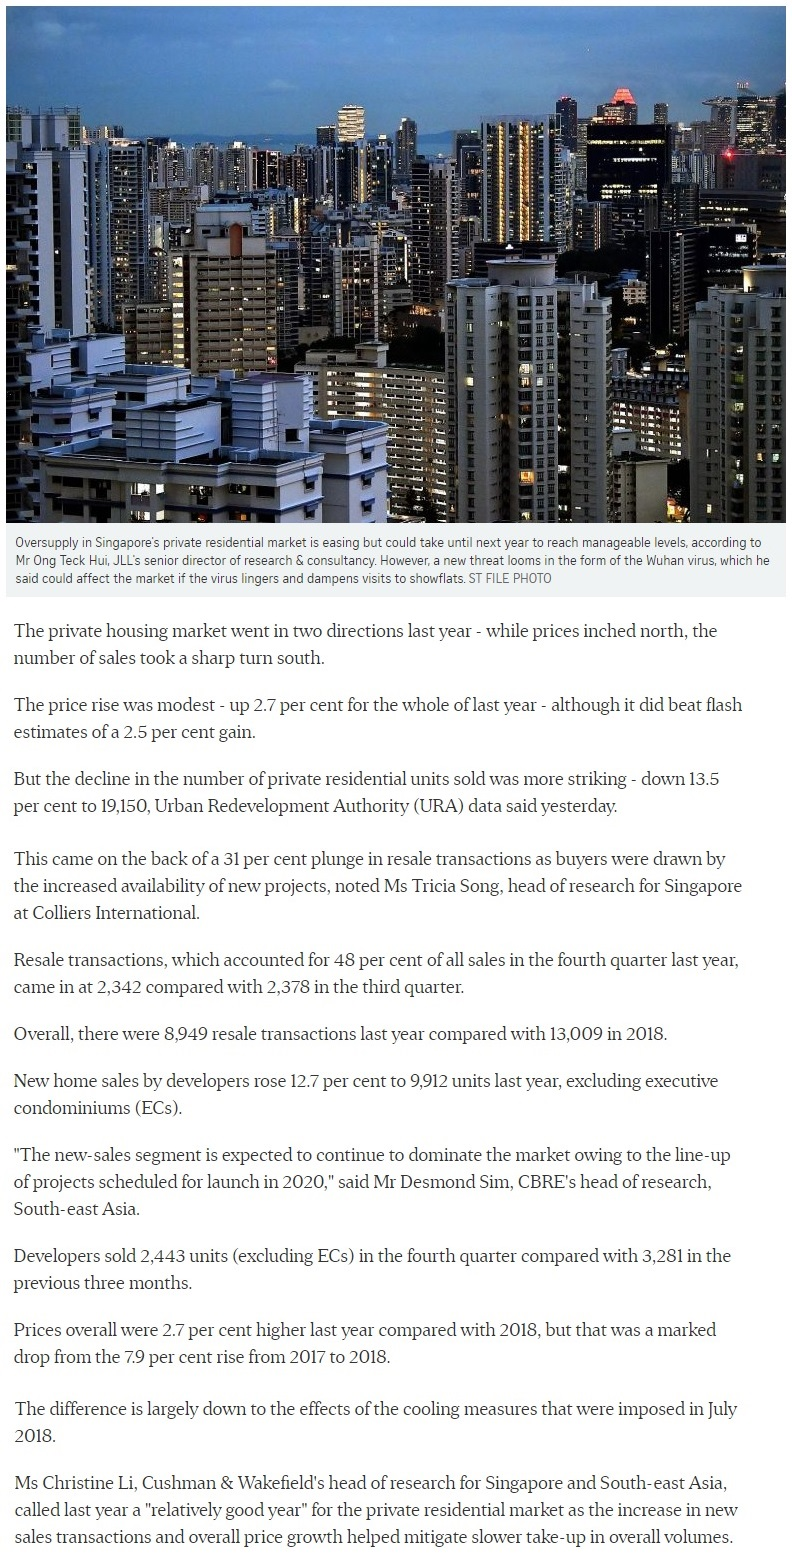 The Landmark - Singapore private home prices inch up 2.7 for 2019 1